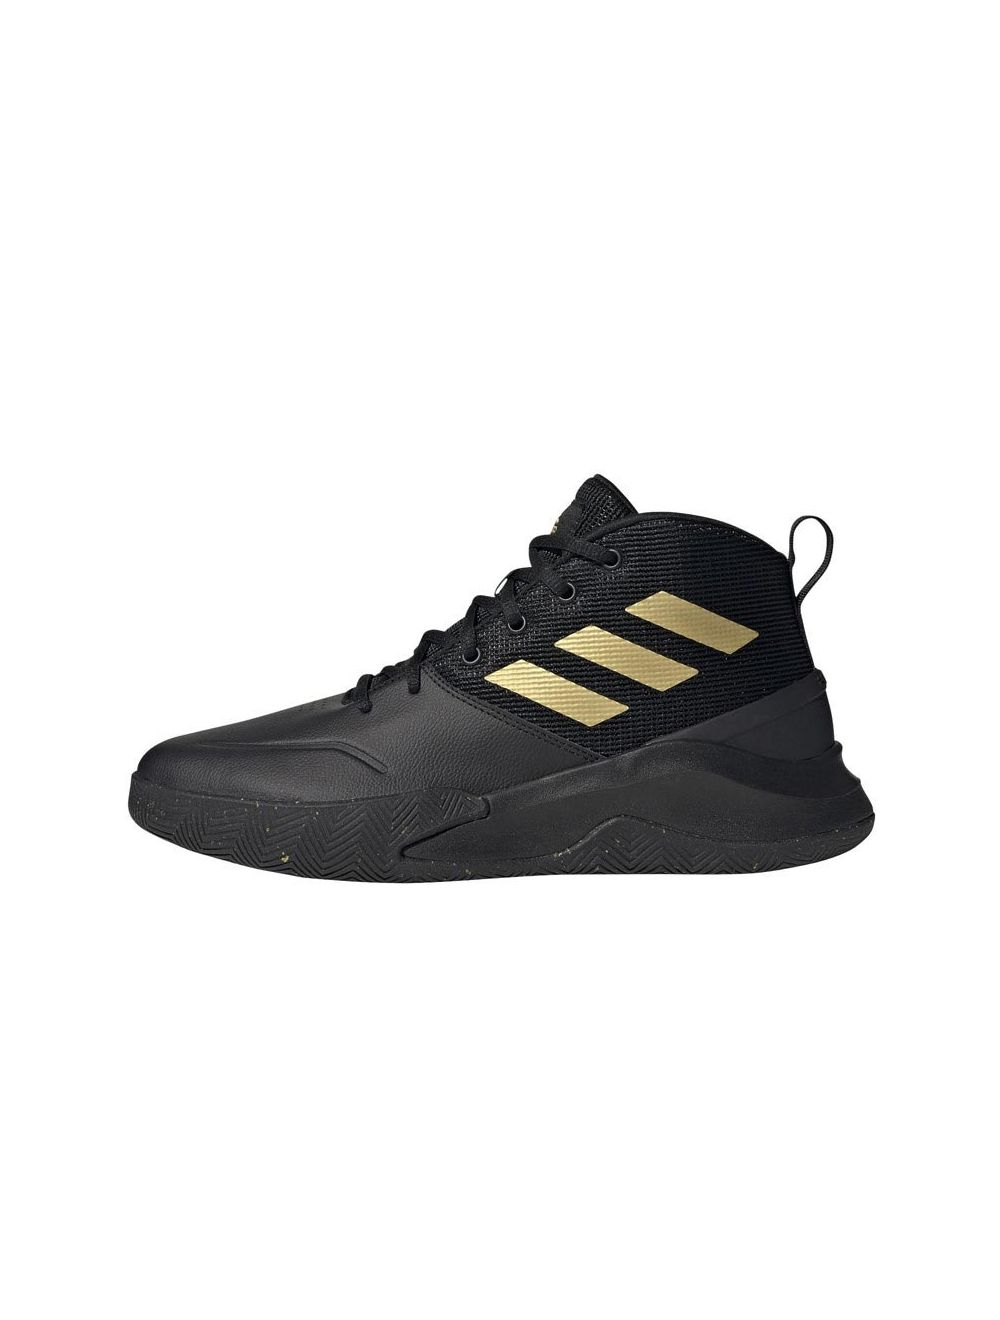 emparedado tirano Maestro  adidas Performance OwnTheGame Mens Core Black Matte Gold